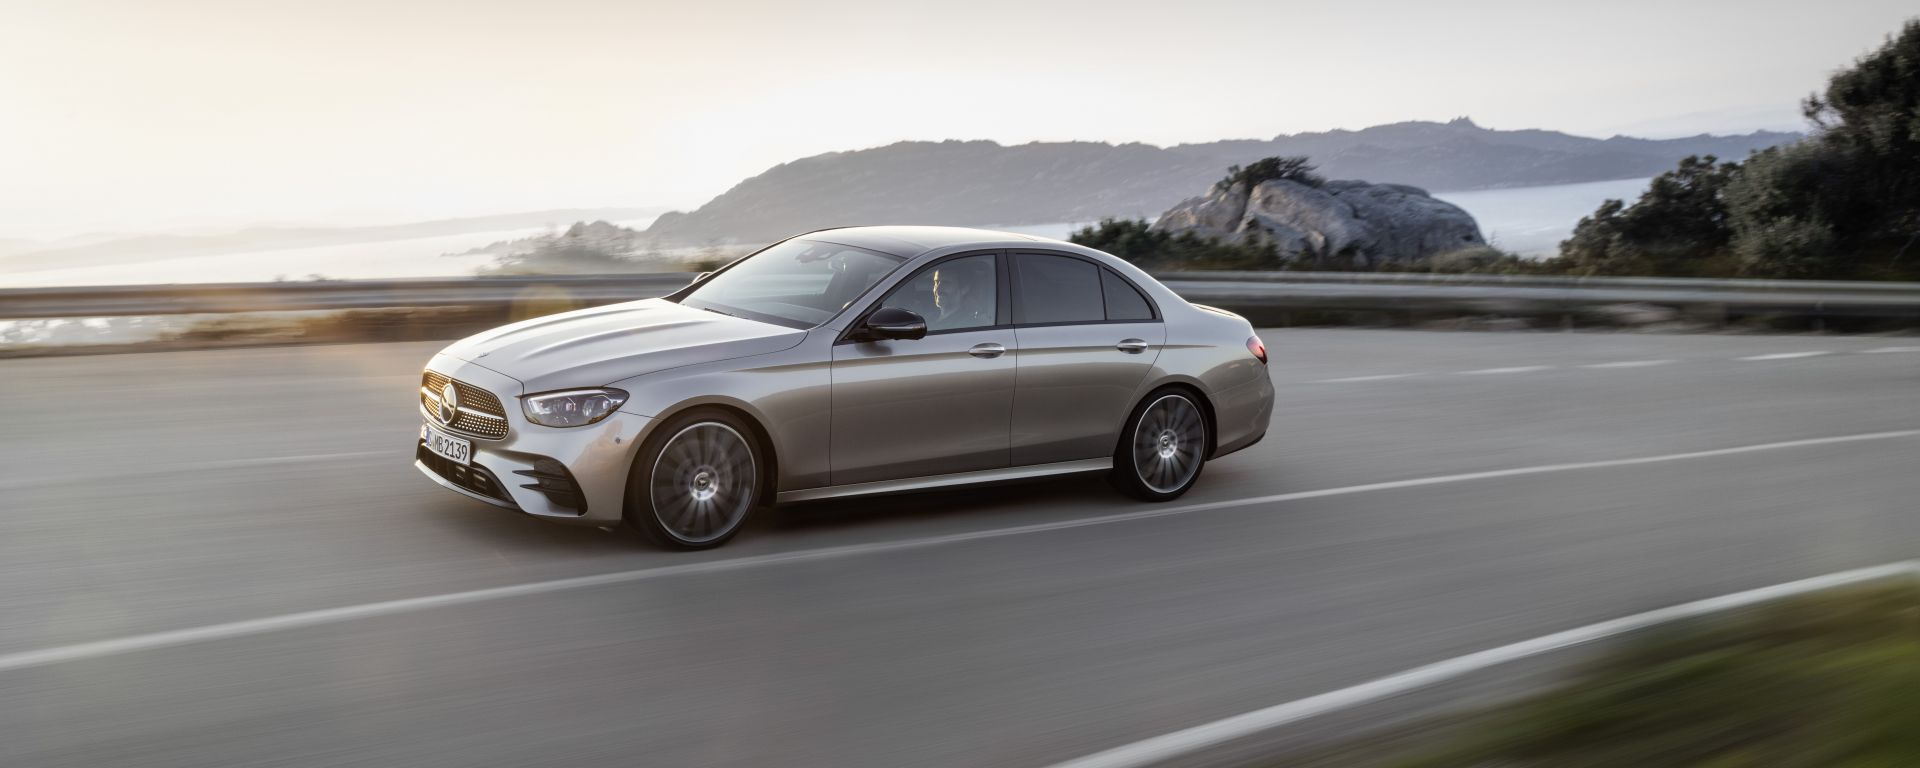 Mercedes Classe E in video dal (Non) Salone di Ginevra 2020